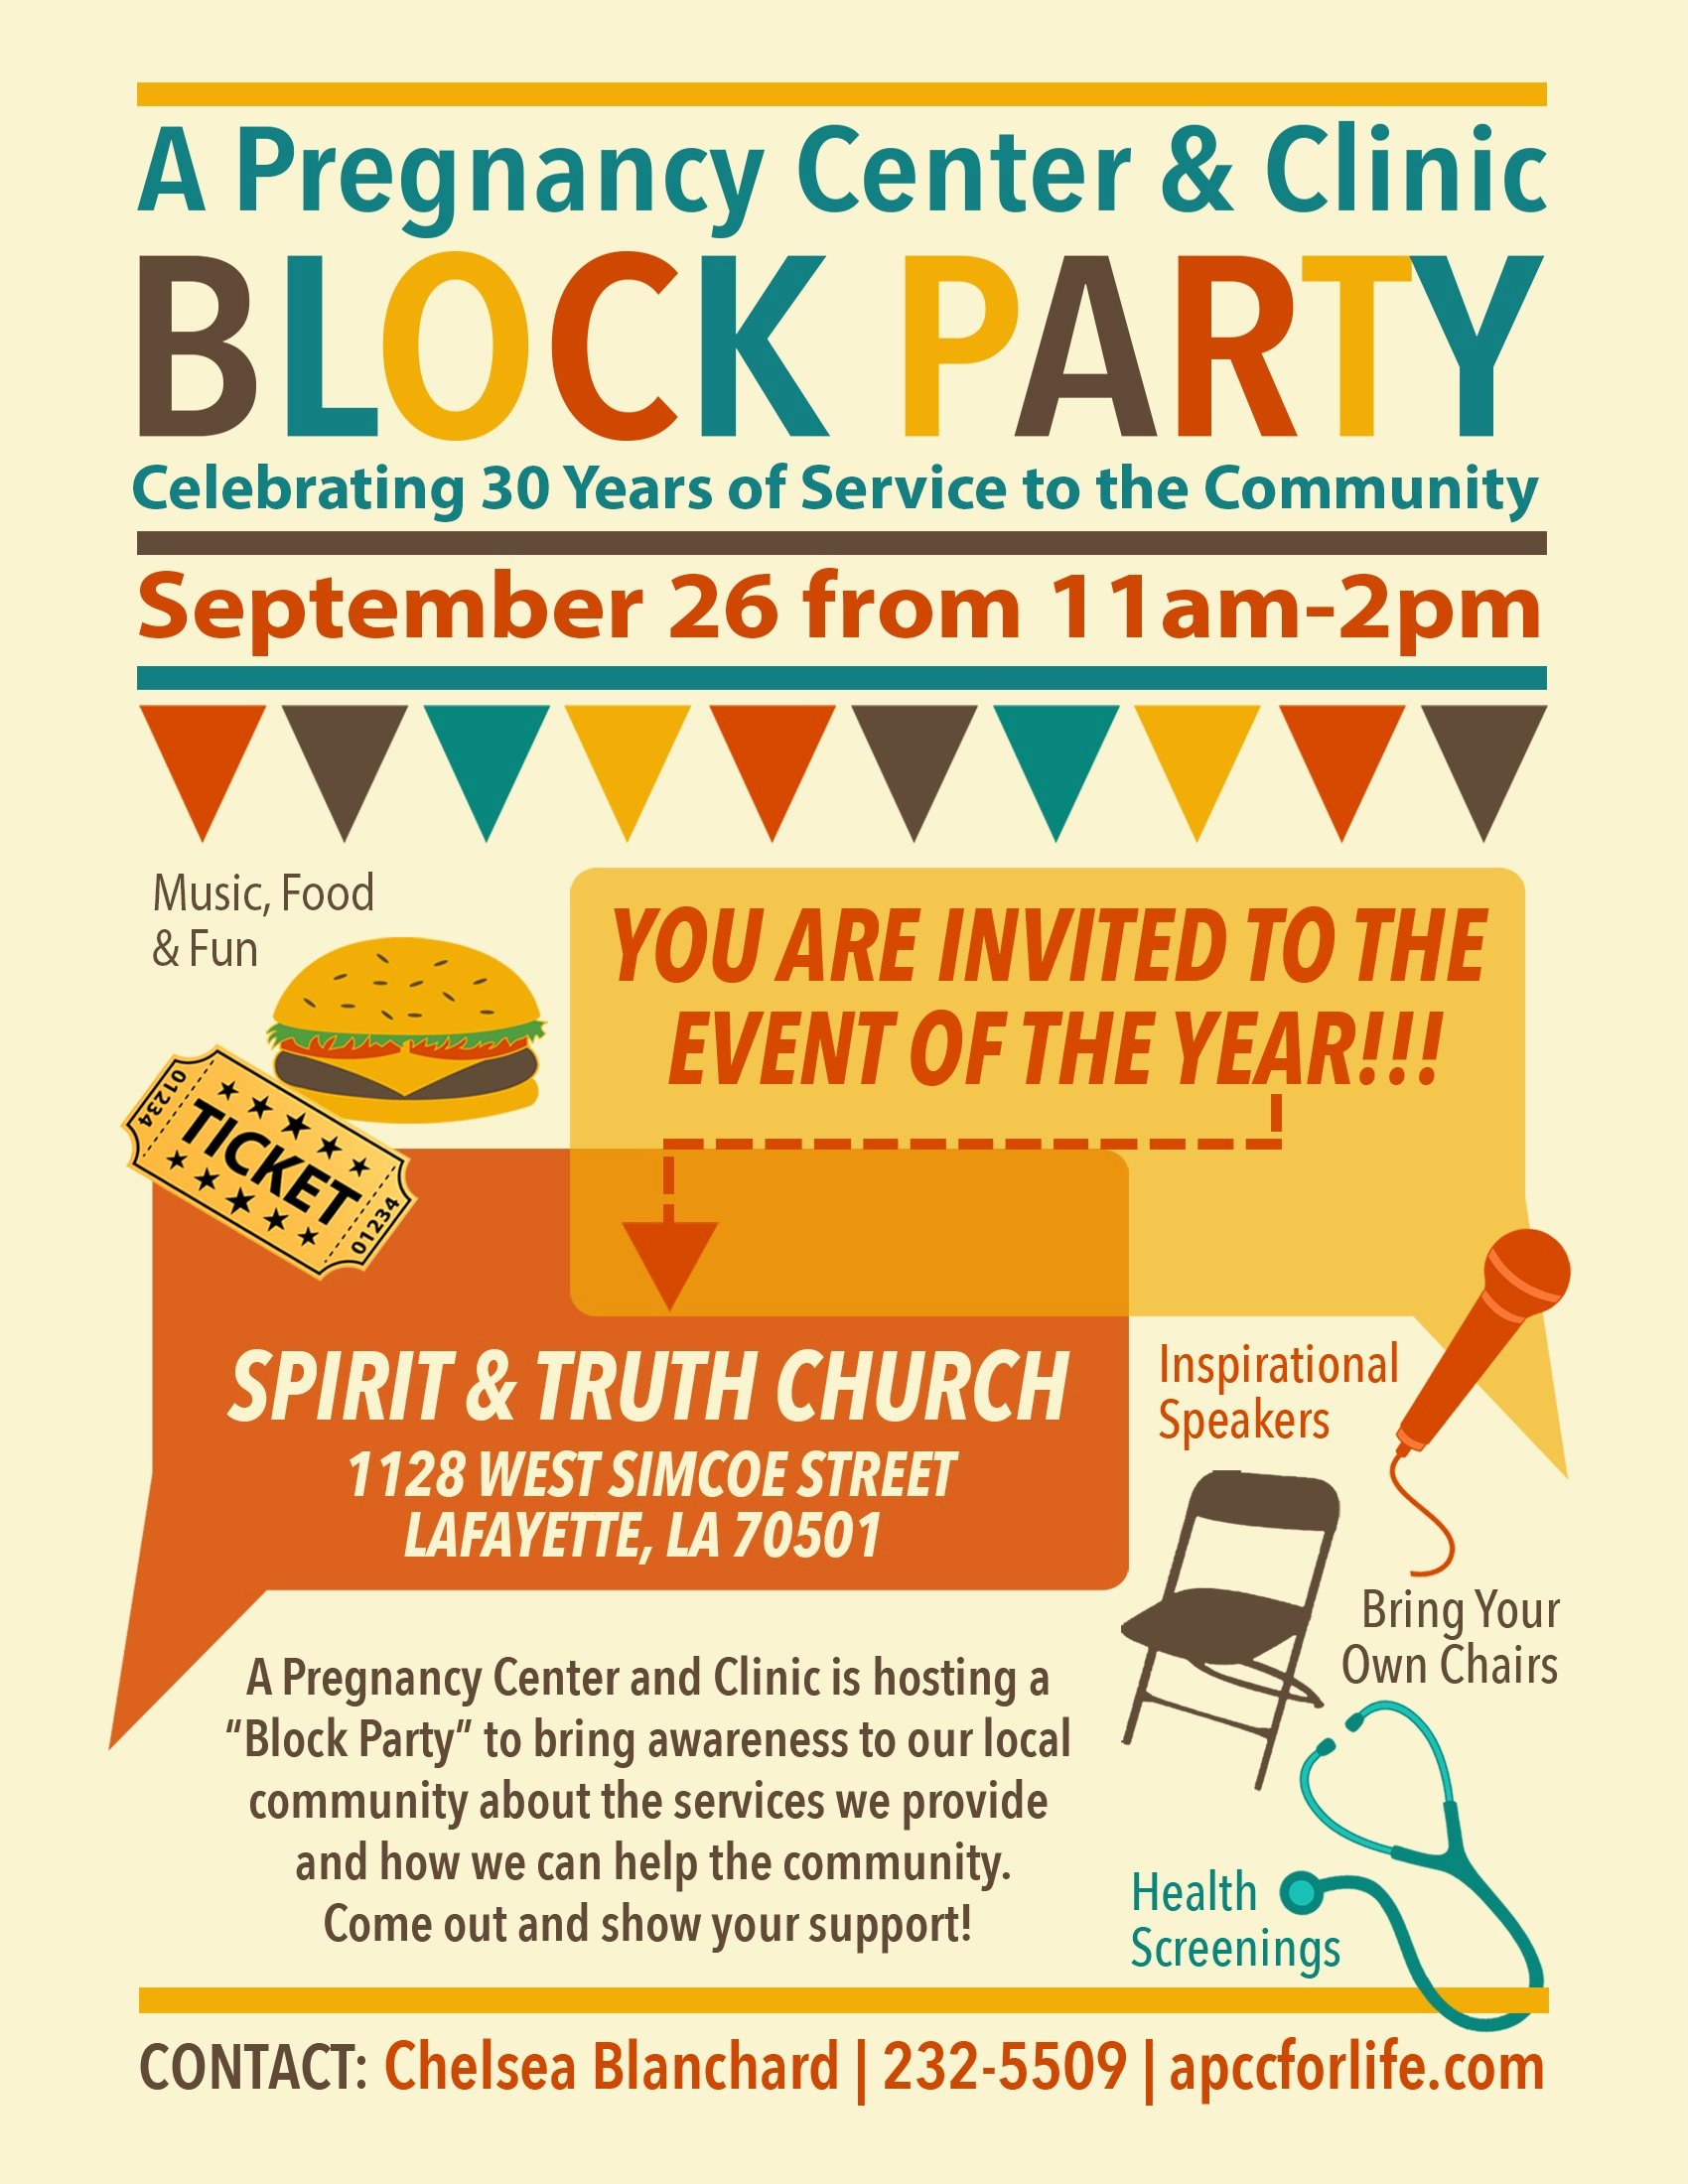 Block Party Flyer Template Luxury A Pregnancy Center and Clinic Block Party